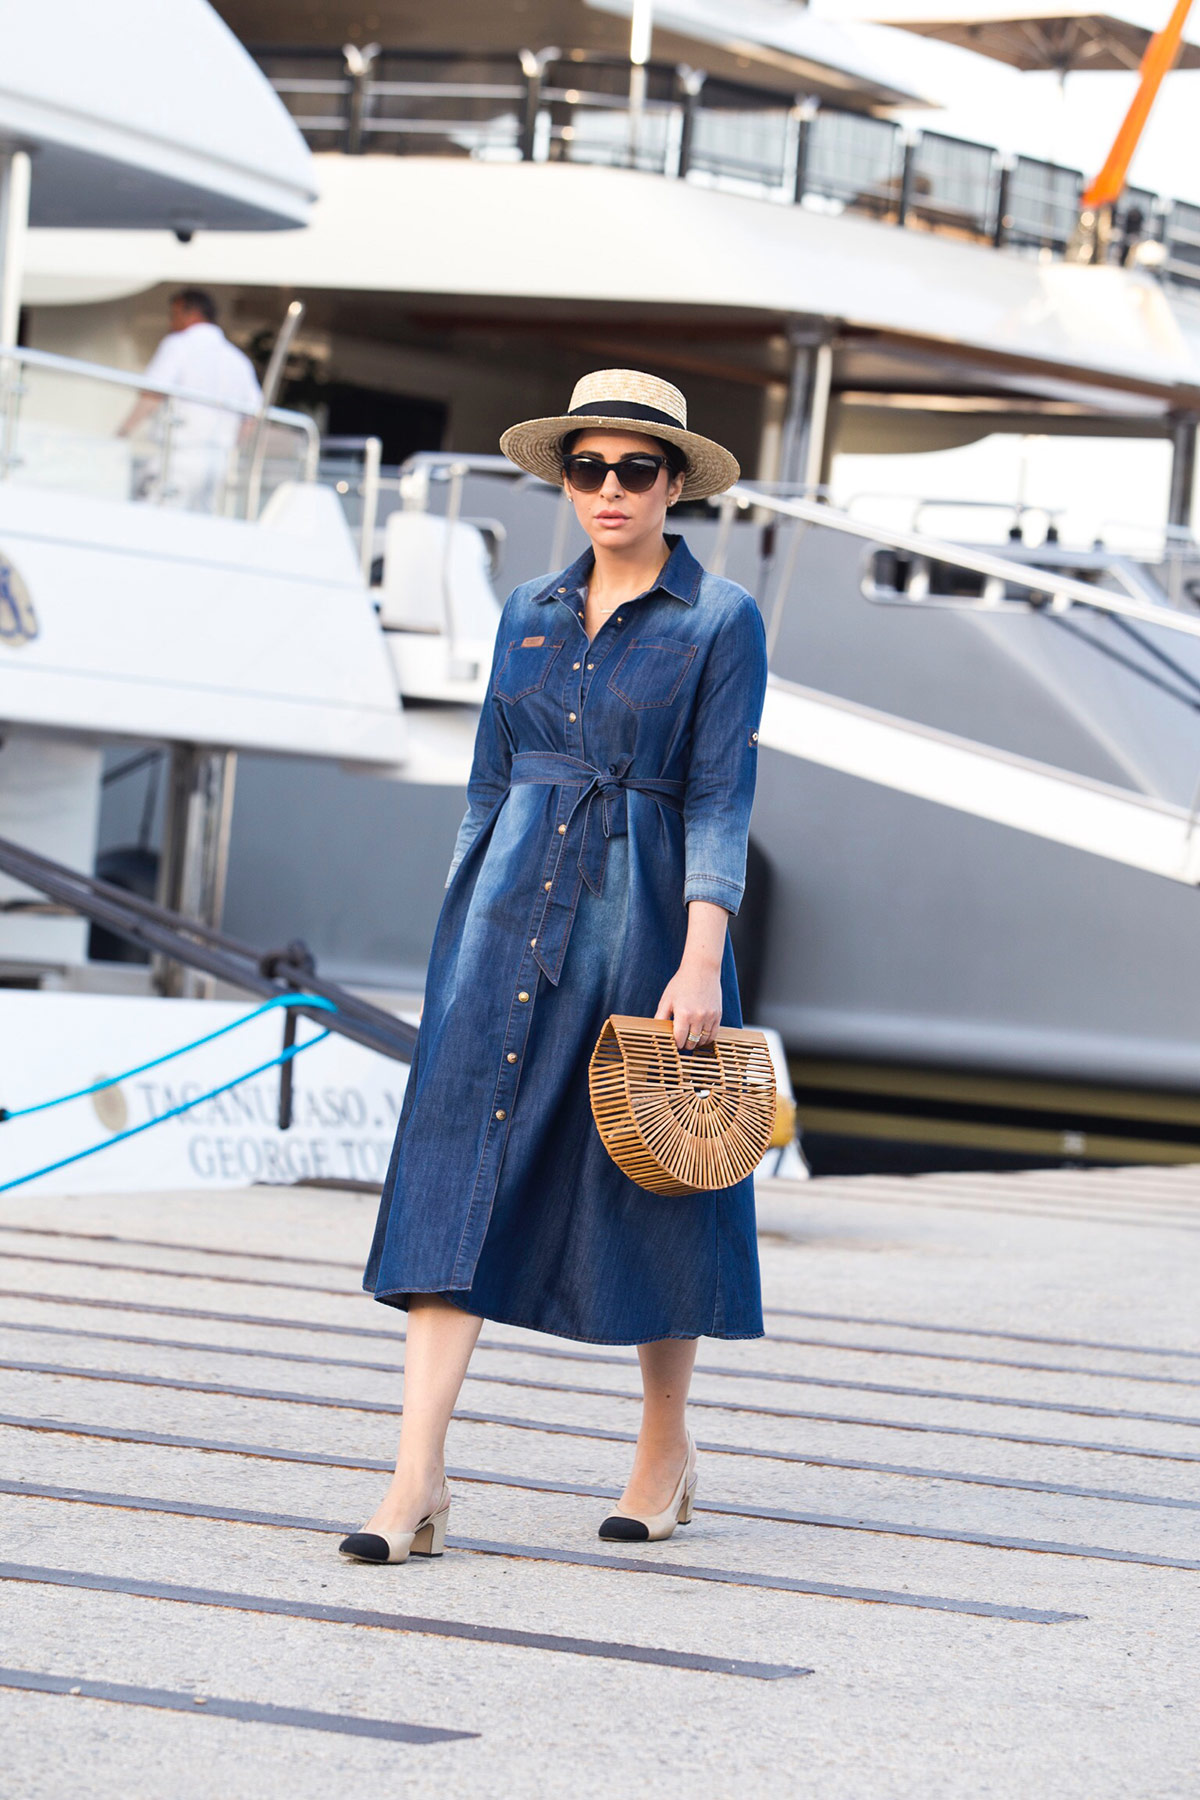 Cruise Chic Style with Denim Dress & Chanel Slingbacks from Stella Asteria